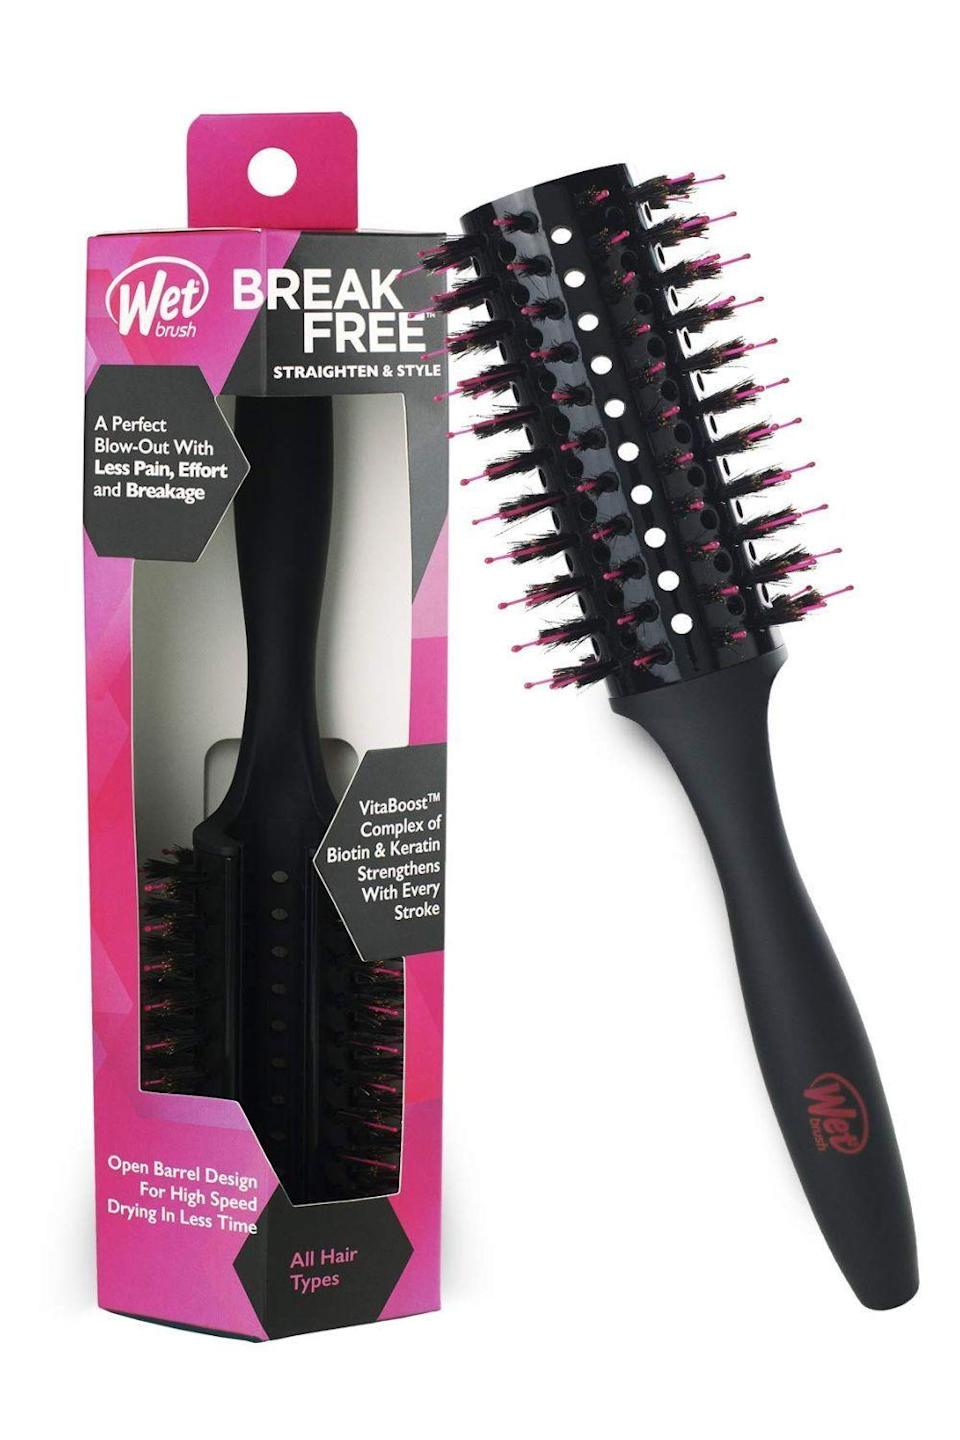 "<p><strong>Wet Brush</strong></p><p>amazon.com</p><p><strong>$16.99</strong></p><p><a href=""https://www.amazon.com/dp/B088HBNWSF?tag=syn-yahoo-20&ascsubtag=%5Bartid%7C10049.g.36119945%5Bsrc%7Cyahoo-us"" rel=""nofollow noopener"" target=""_blank"" data-ylk=""slk:Shop Now"" class=""link rapid-noclick-resp"">Shop Now</a></p><p>Finding the right size <a href=""https://www.cosmopolitan.com/style-beauty/beauty/g30017766/best-hair-brushes/"" rel=""nofollow noopener"" target=""_blank"" data-ylk=""slk:hairbrush"" class=""link rapid-noclick-resp"">hairbrush</a> for styling your bangs takes a little experimentation, but <strong>this round <a href=""https://www.cosmopolitan.com/style-beauty/beauty/g26986683/best-detangling-brush/"" rel=""nofollow noopener"" target=""_blank"" data-ylk=""slk:detangling brush"" class=""link rapid-noclick-resp"">detangling brush</a> is a good place to start for both straightening bangs and adding volume</strong>. If you want the outside pieces to flip away from your face, place the brush on top of your bangs and style it back, or if you want them in the direction toward your face, place the round brush underneath and rotate the brush forward. Once dry, use your fingers to shake them out and split them to each side like *ahem* curtains.</p>"